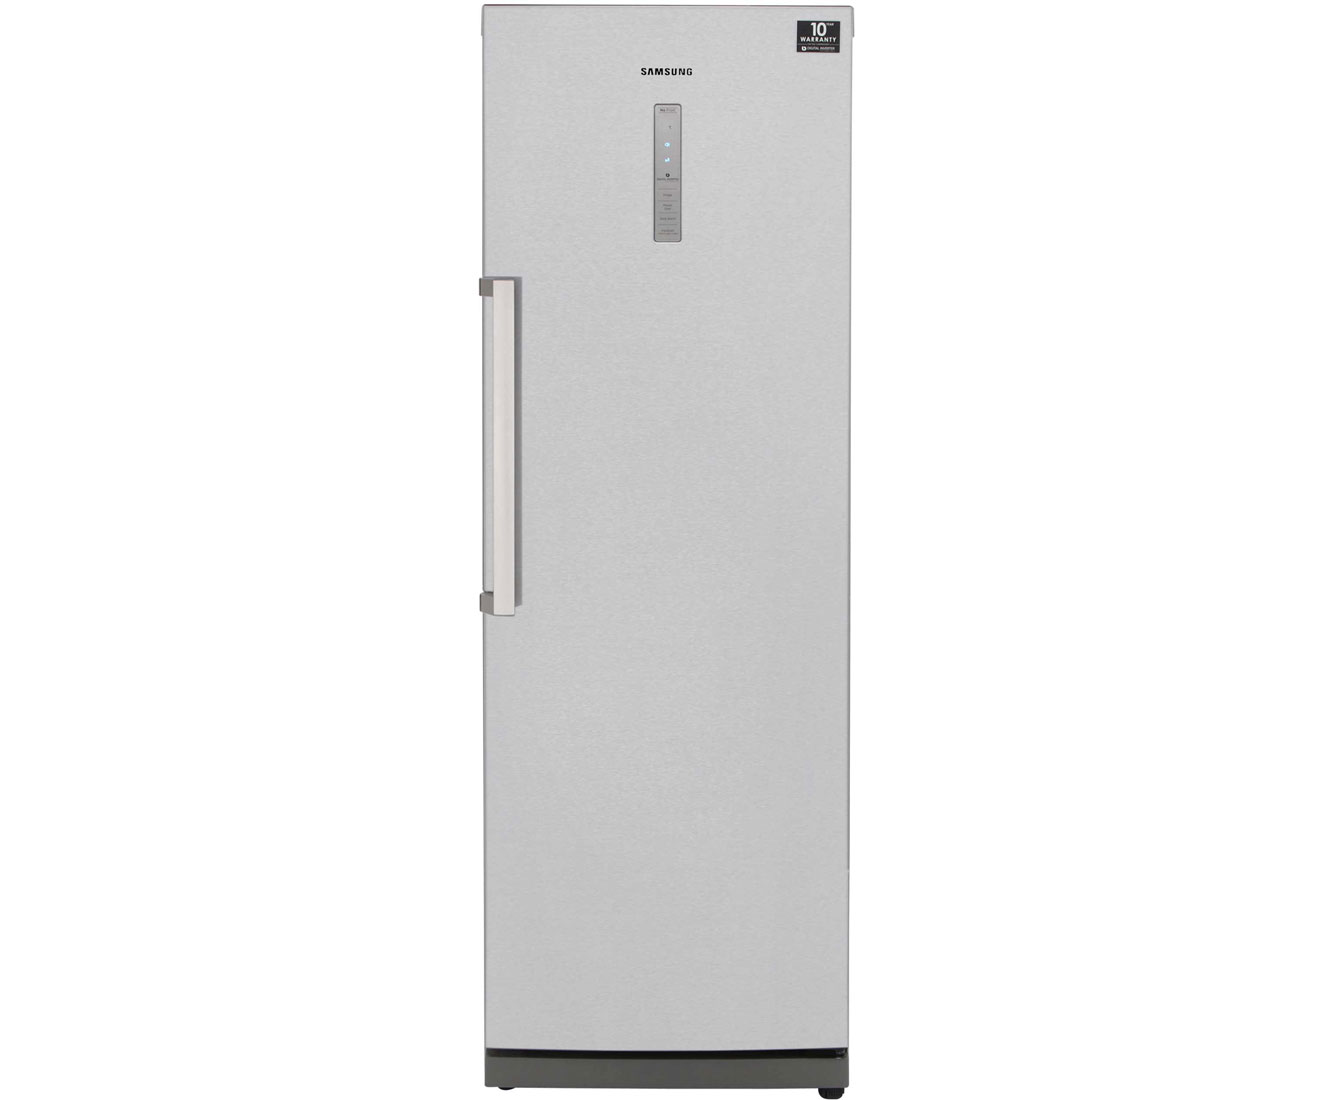 Samsung RR35H6110SA Fridge - Graphite